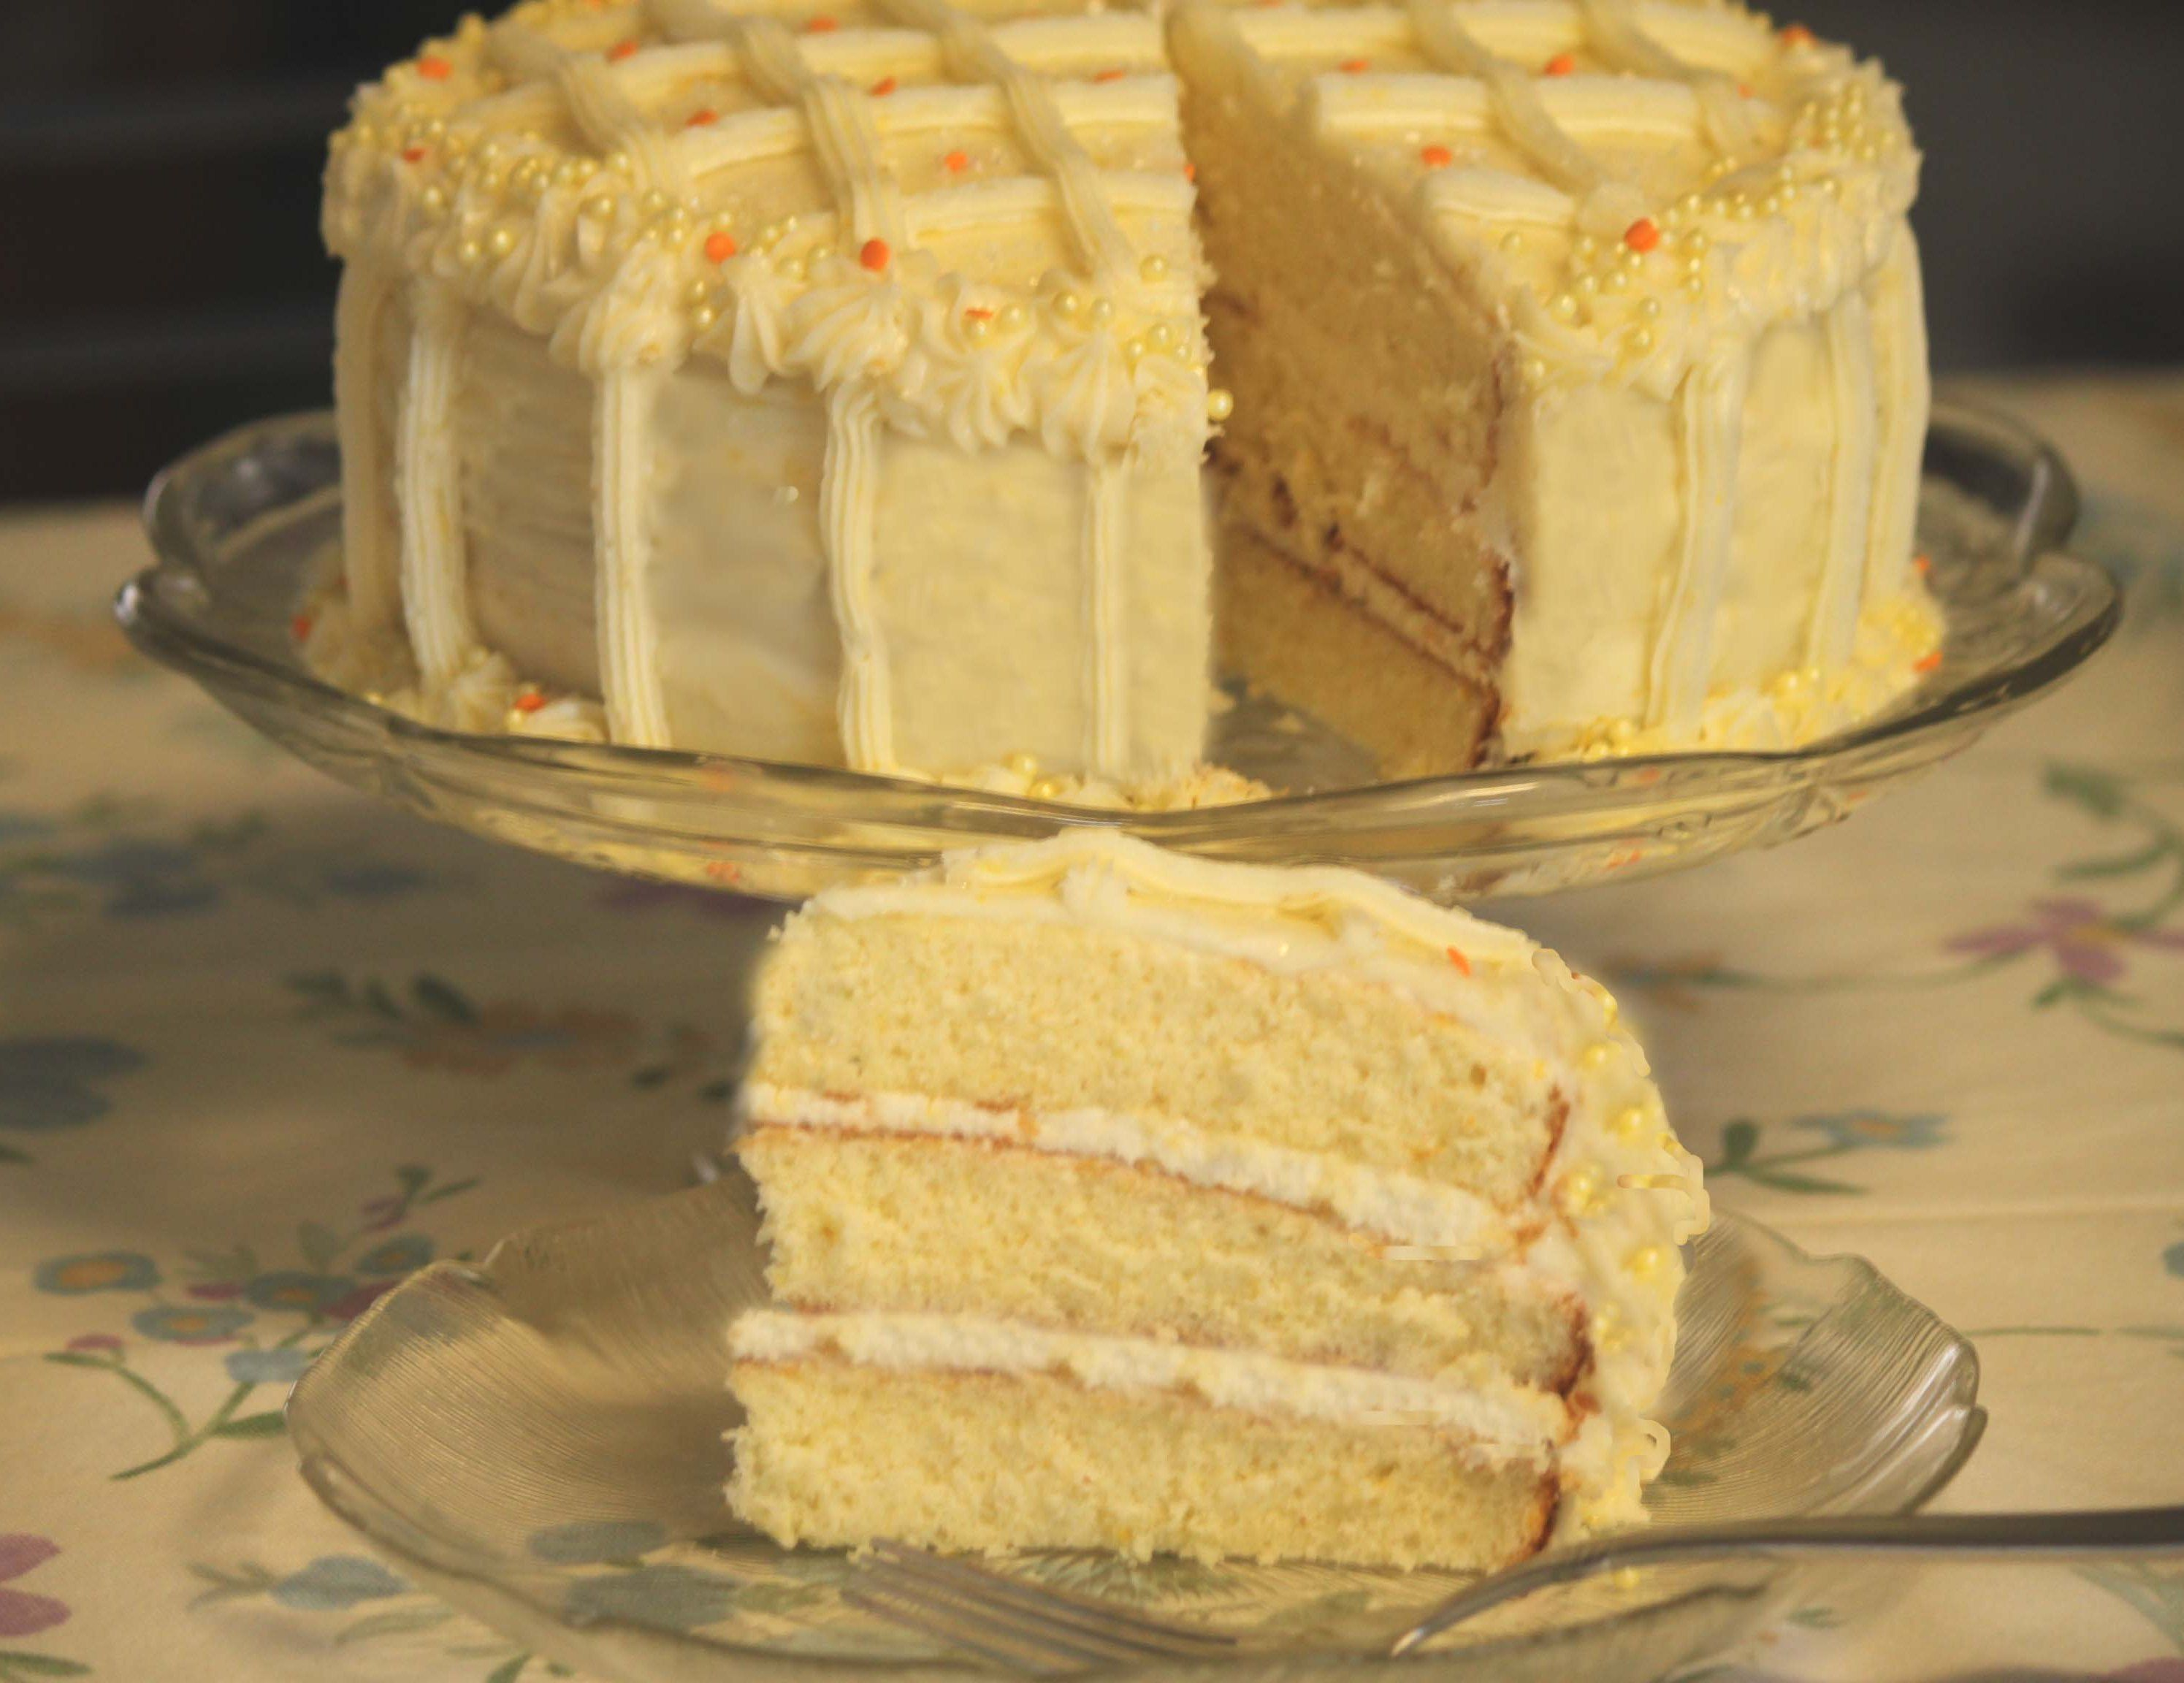 Lemon Cake Recipe Joy Of Baking: Lemon Orange Chiffon Cake (recipe From Southern Living